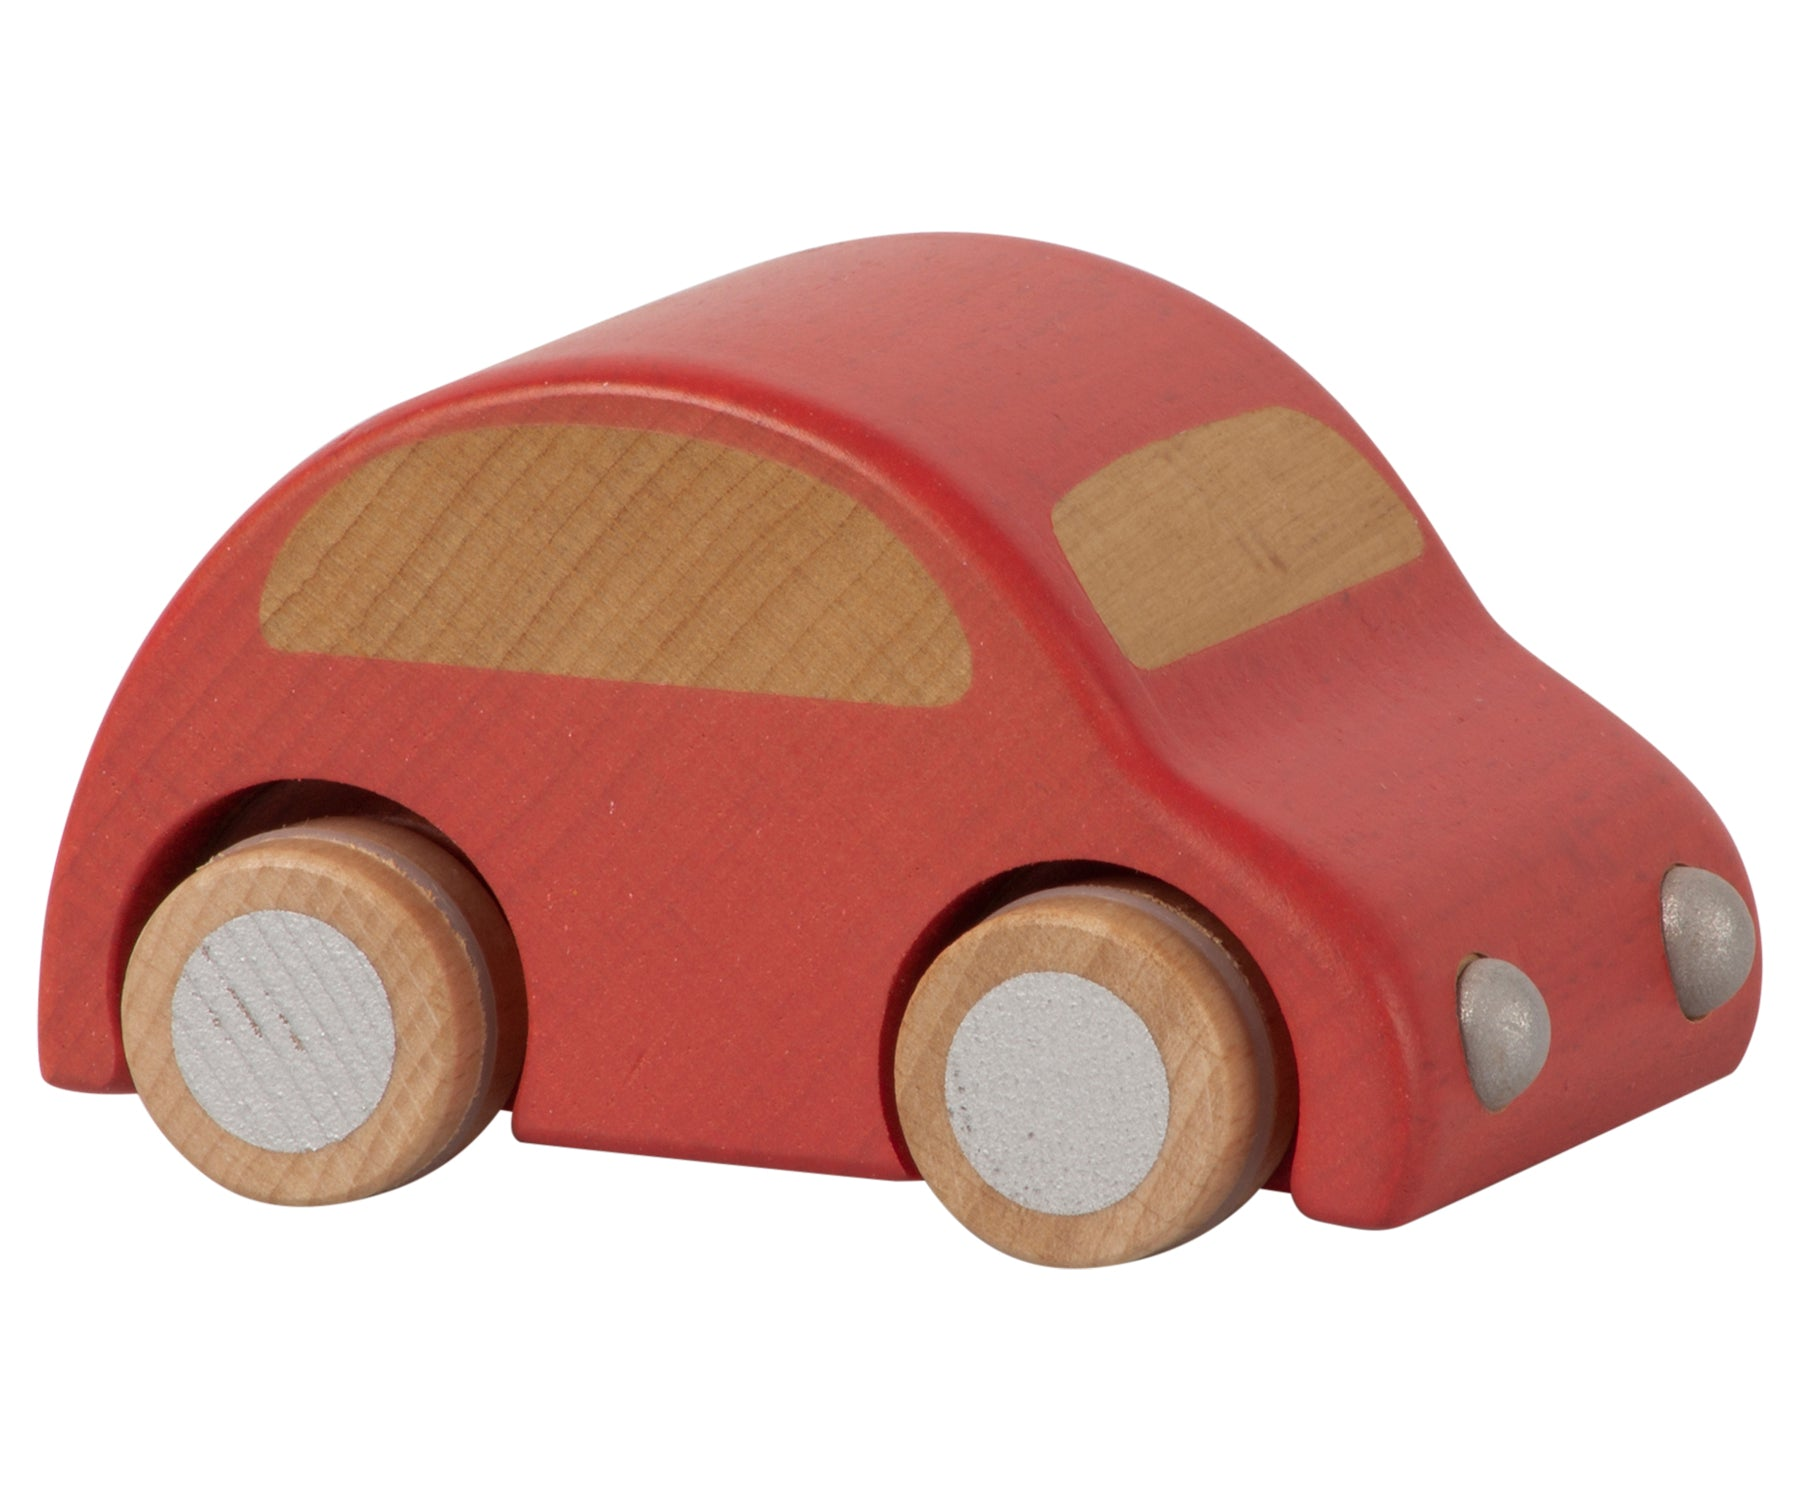 Maileg Wooden Car, Red